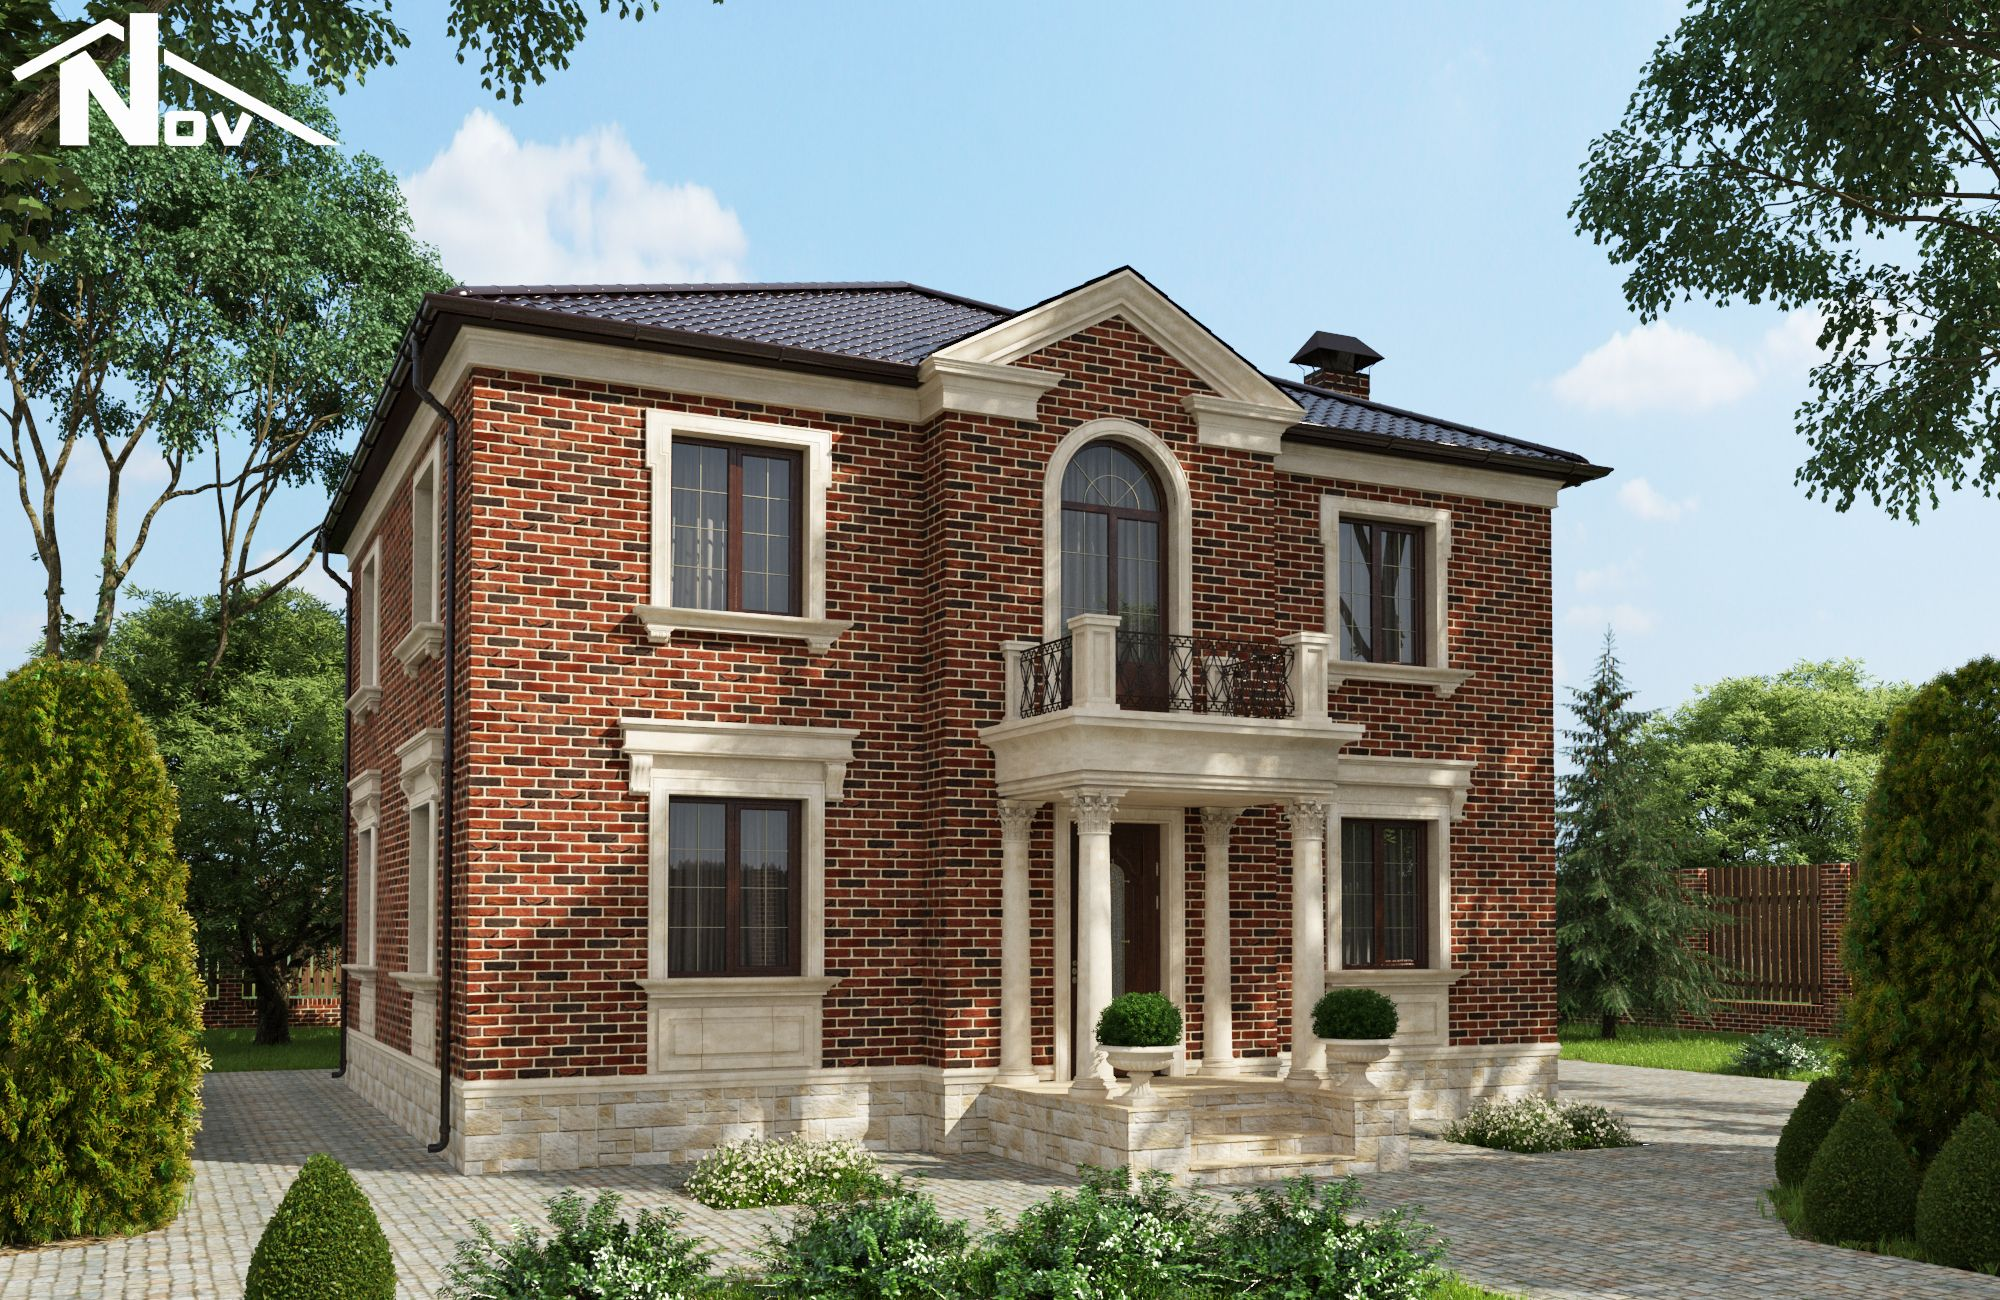 56 for American brick and stone